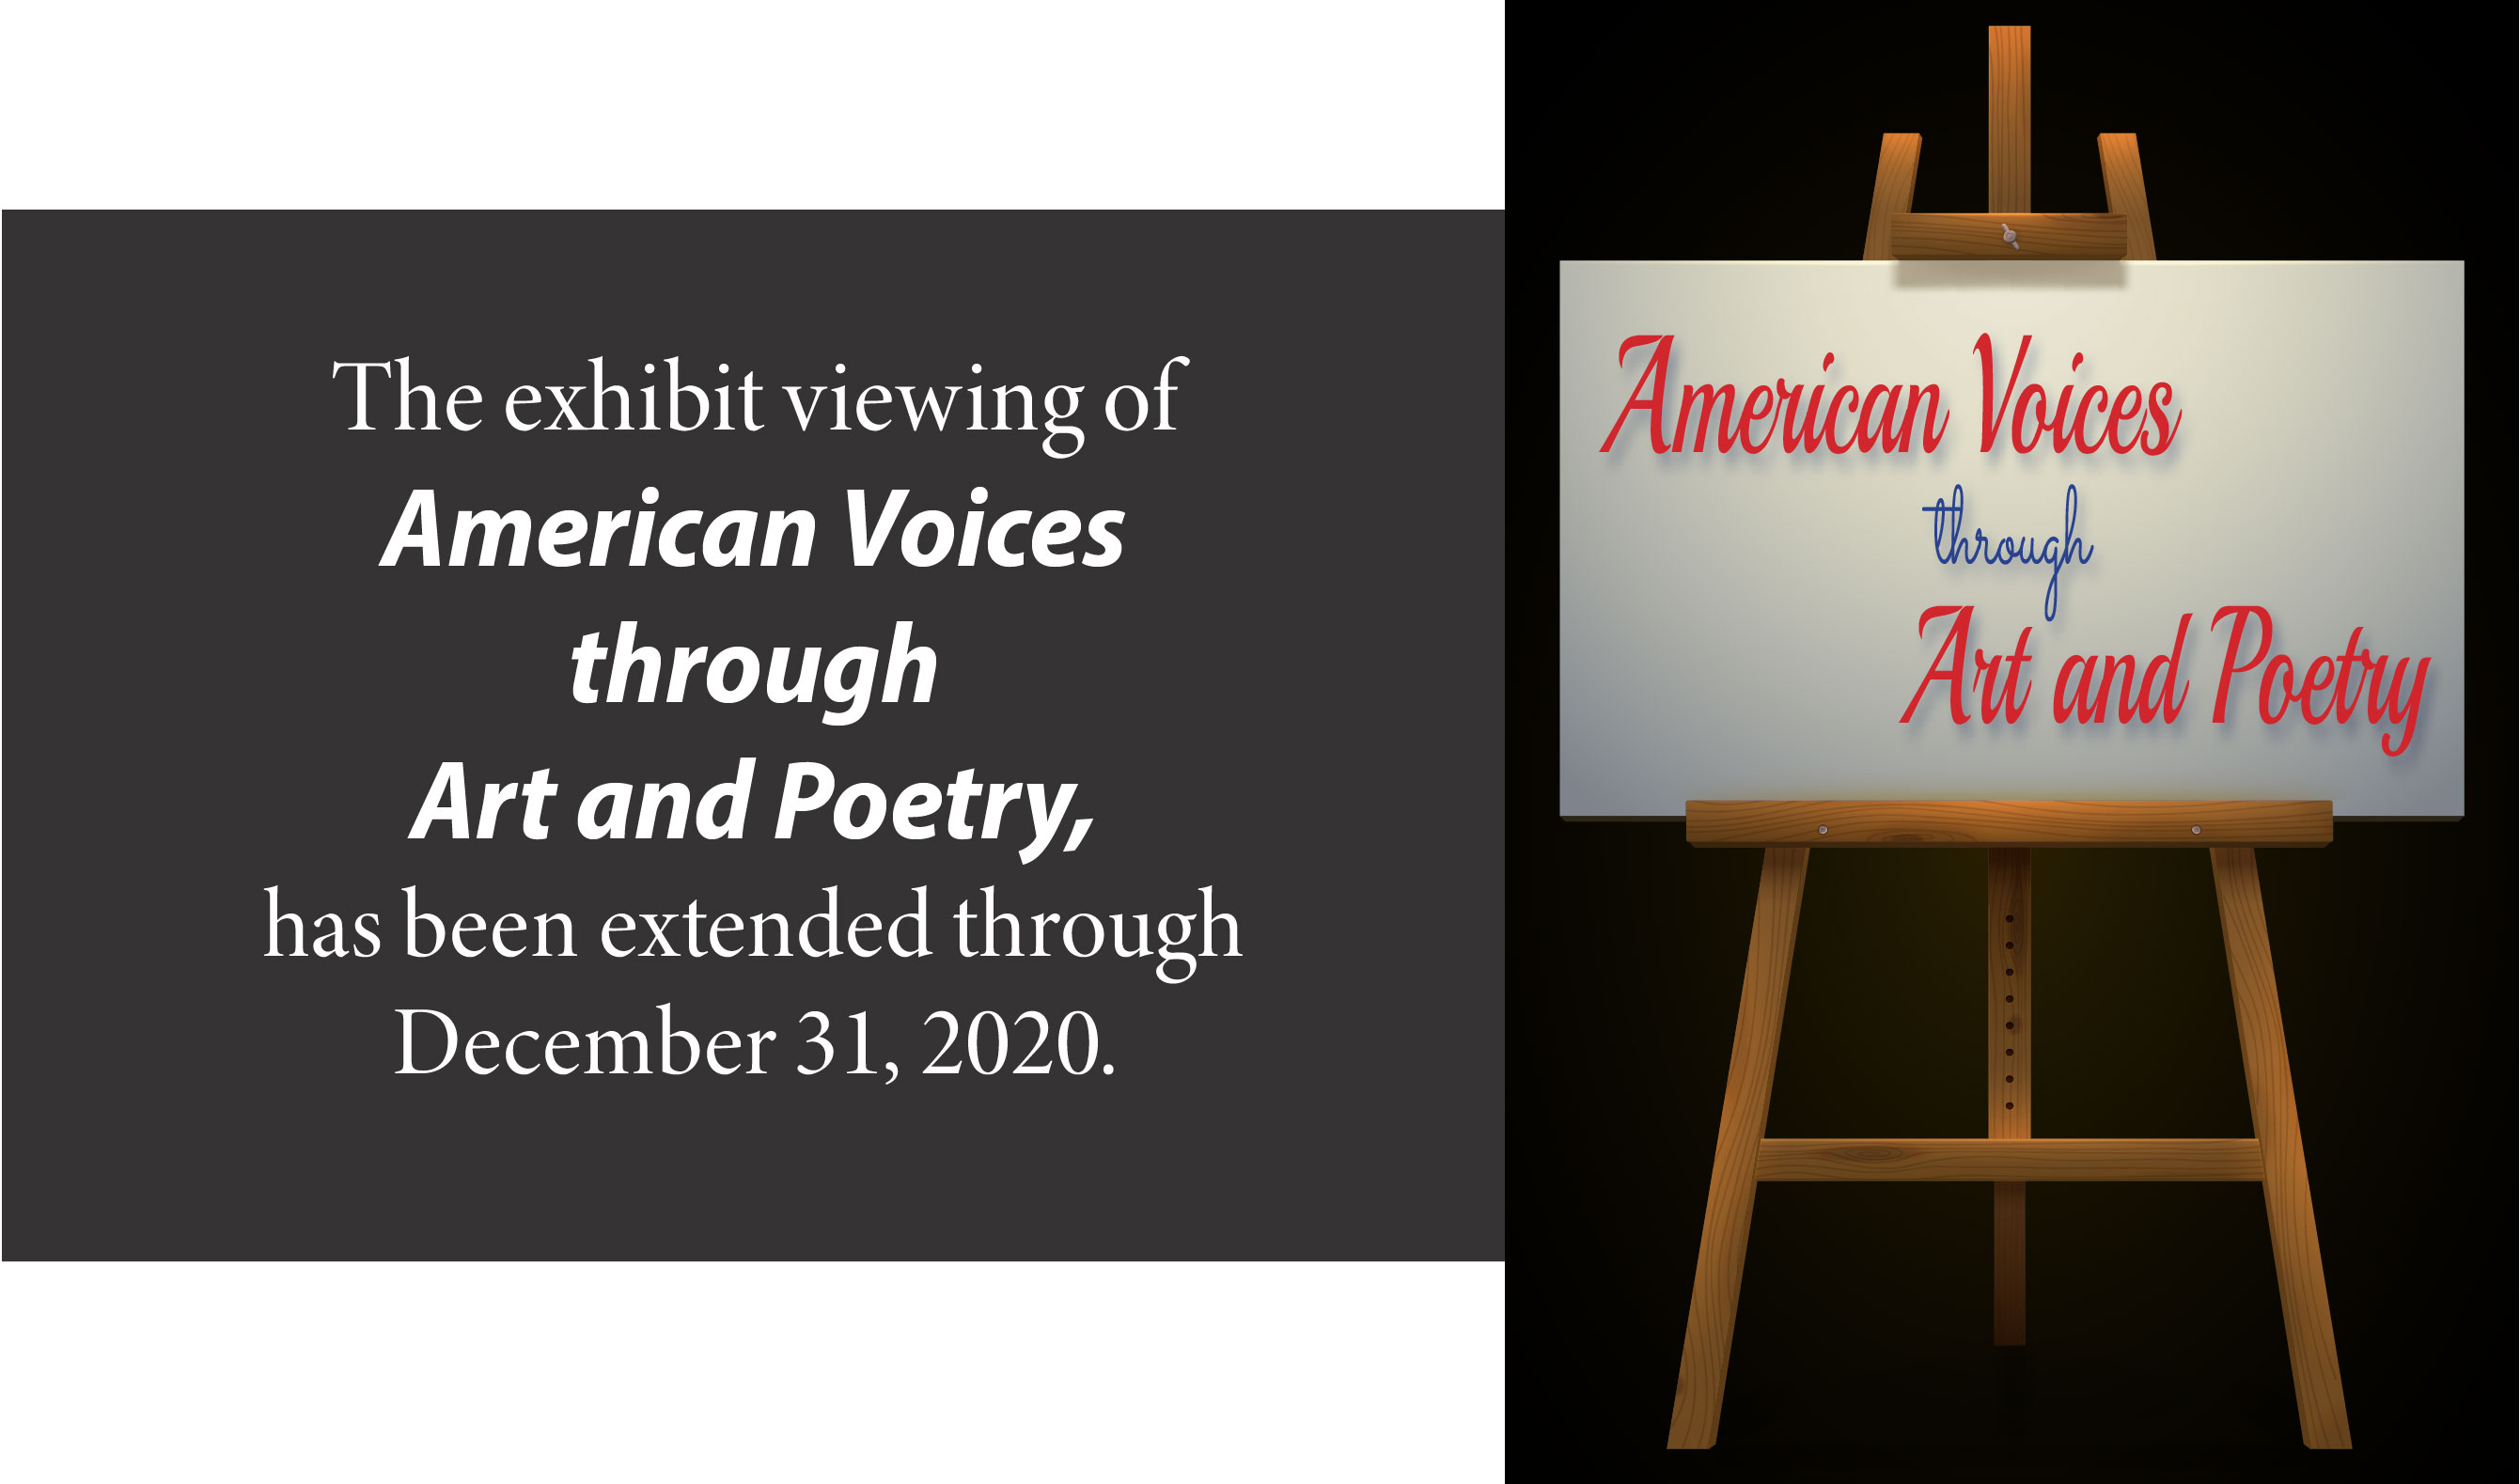 American Voices through Art and Poetry